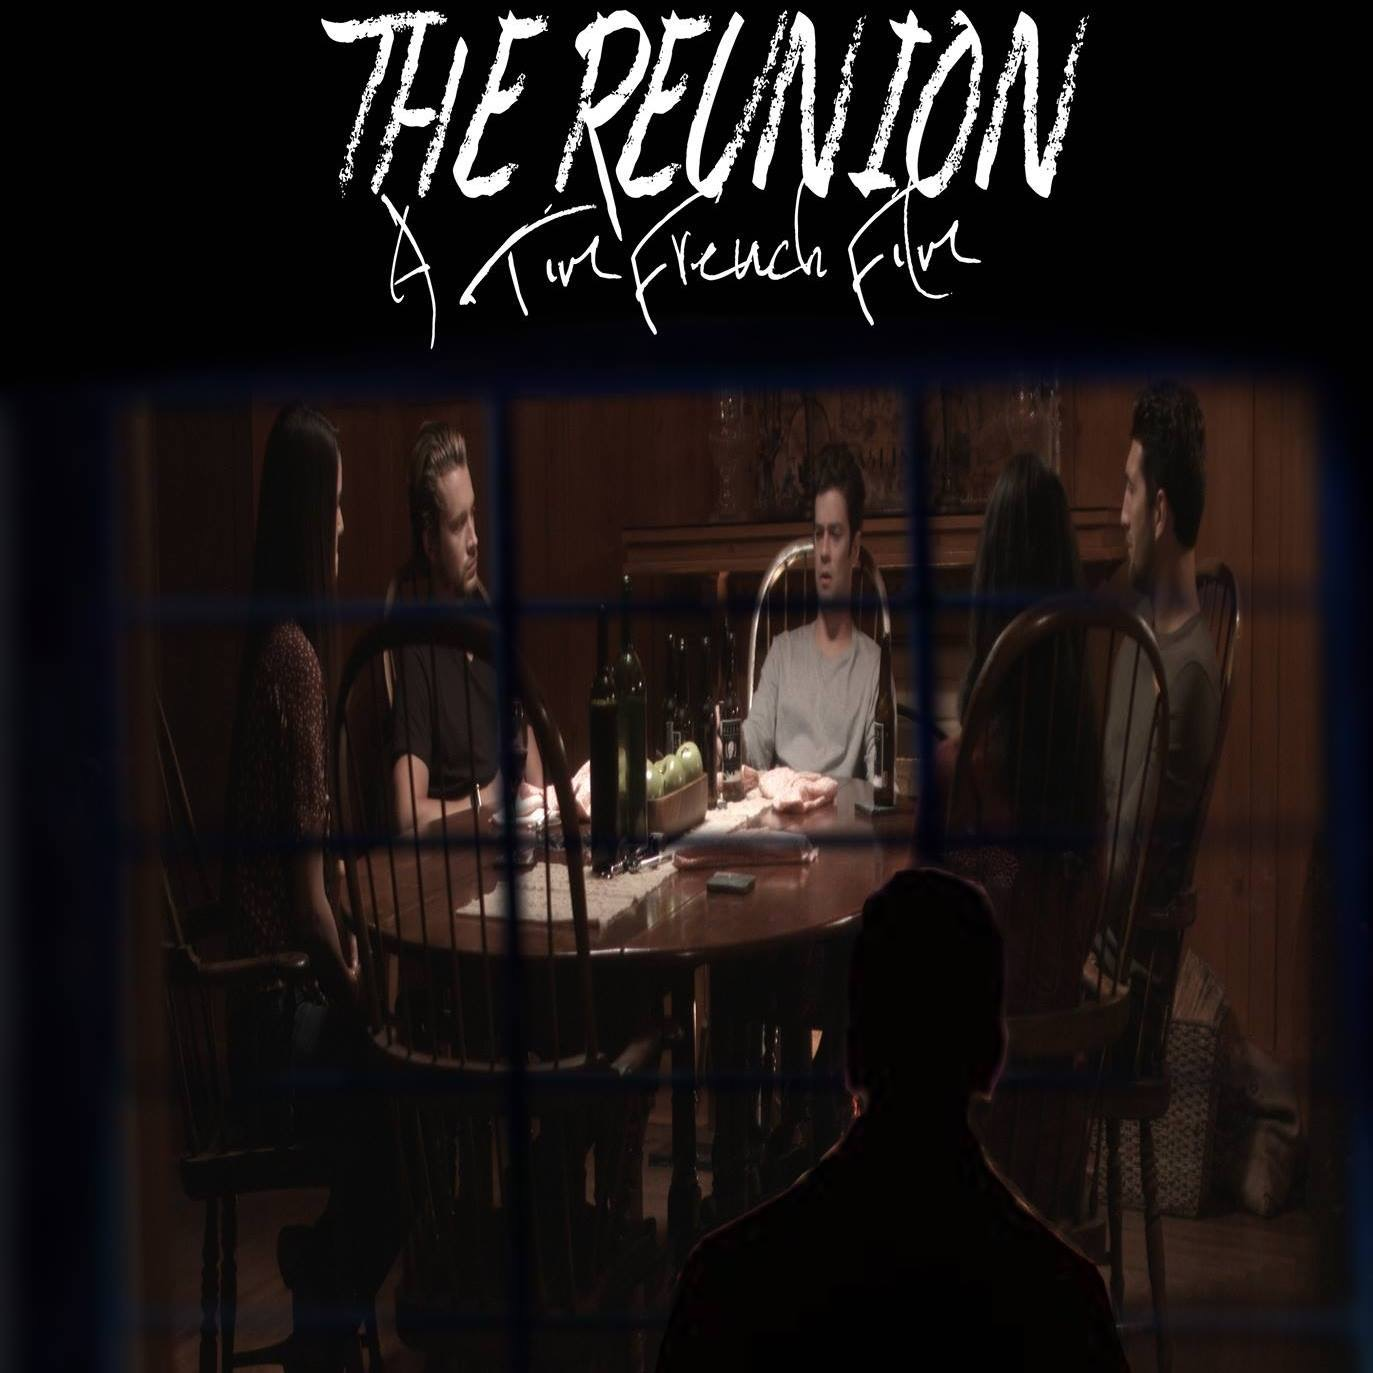 The Reunion just got picked up for distribution by Freestyle and will be released this Septeber.